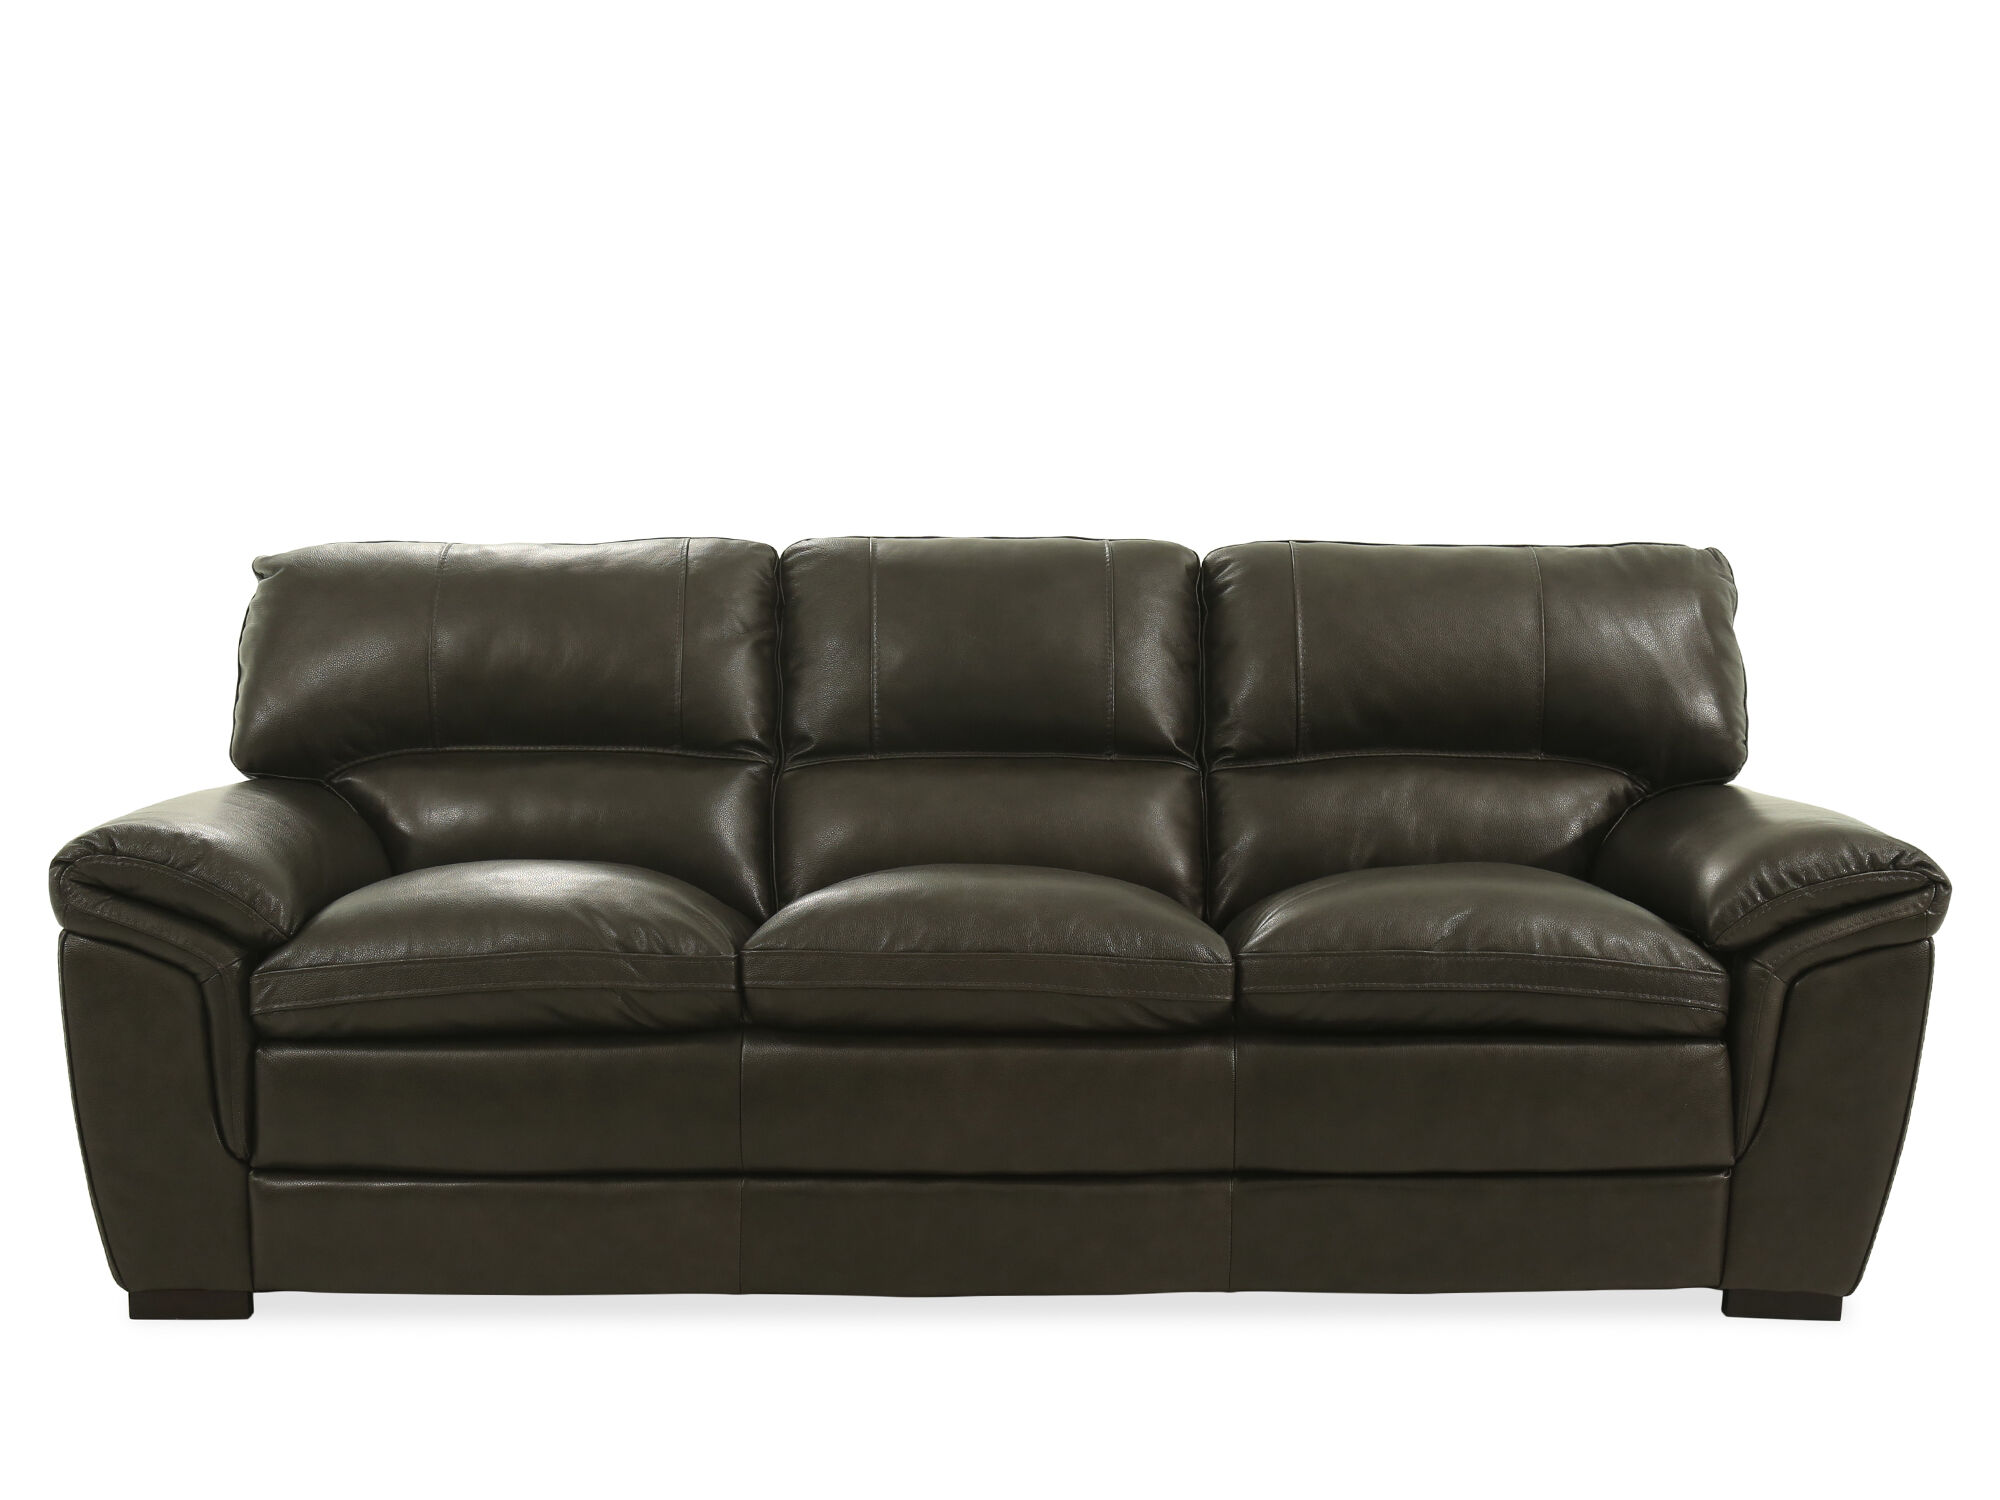 gray leather sofa images apartment 93 quot in dark mathis brothers furniture